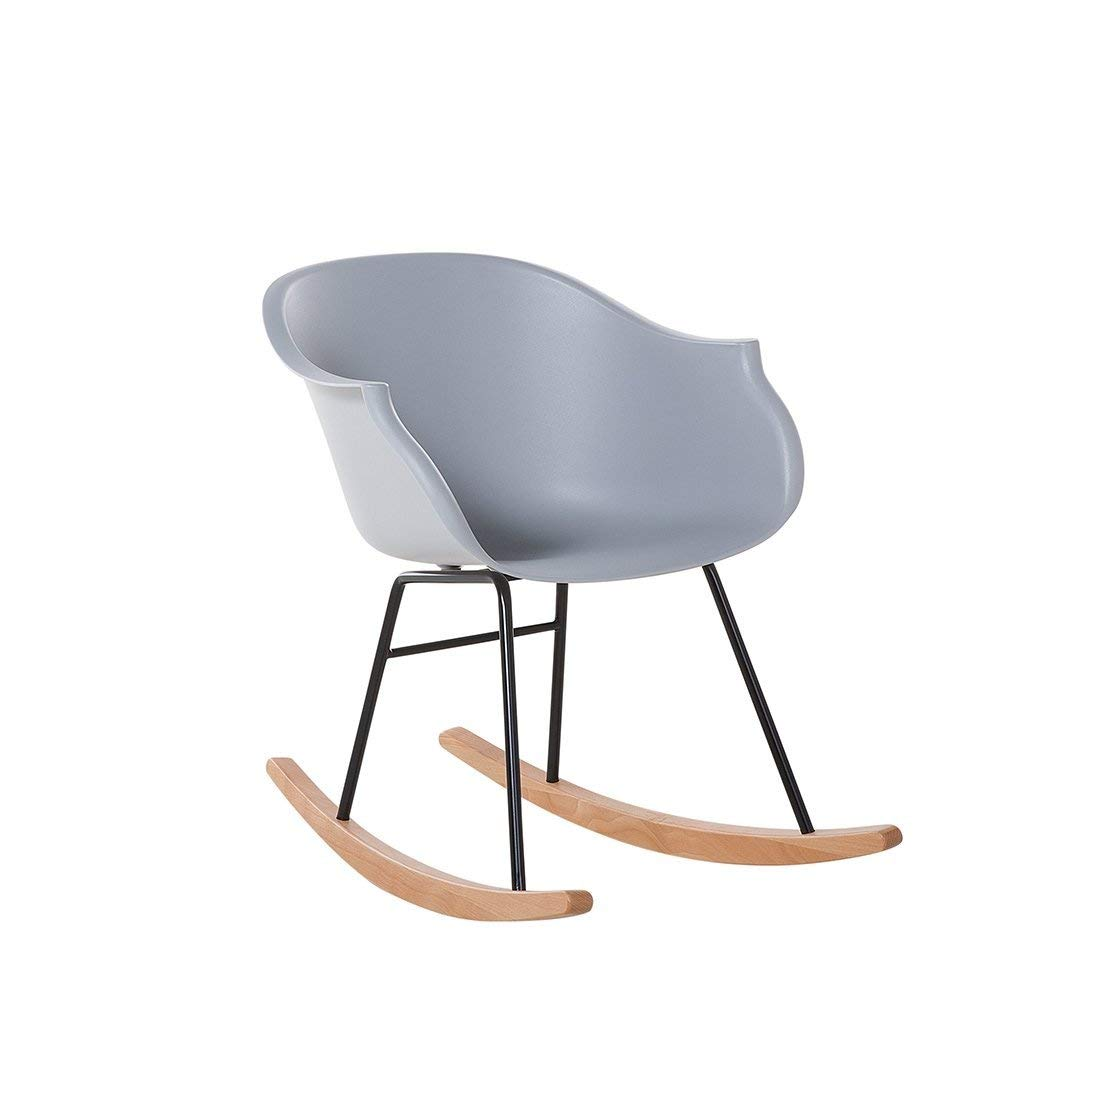 cheap modern rocking chair gothic dining chairs uk find get quotations beliani scandinavian natural wood plastic gray harmony